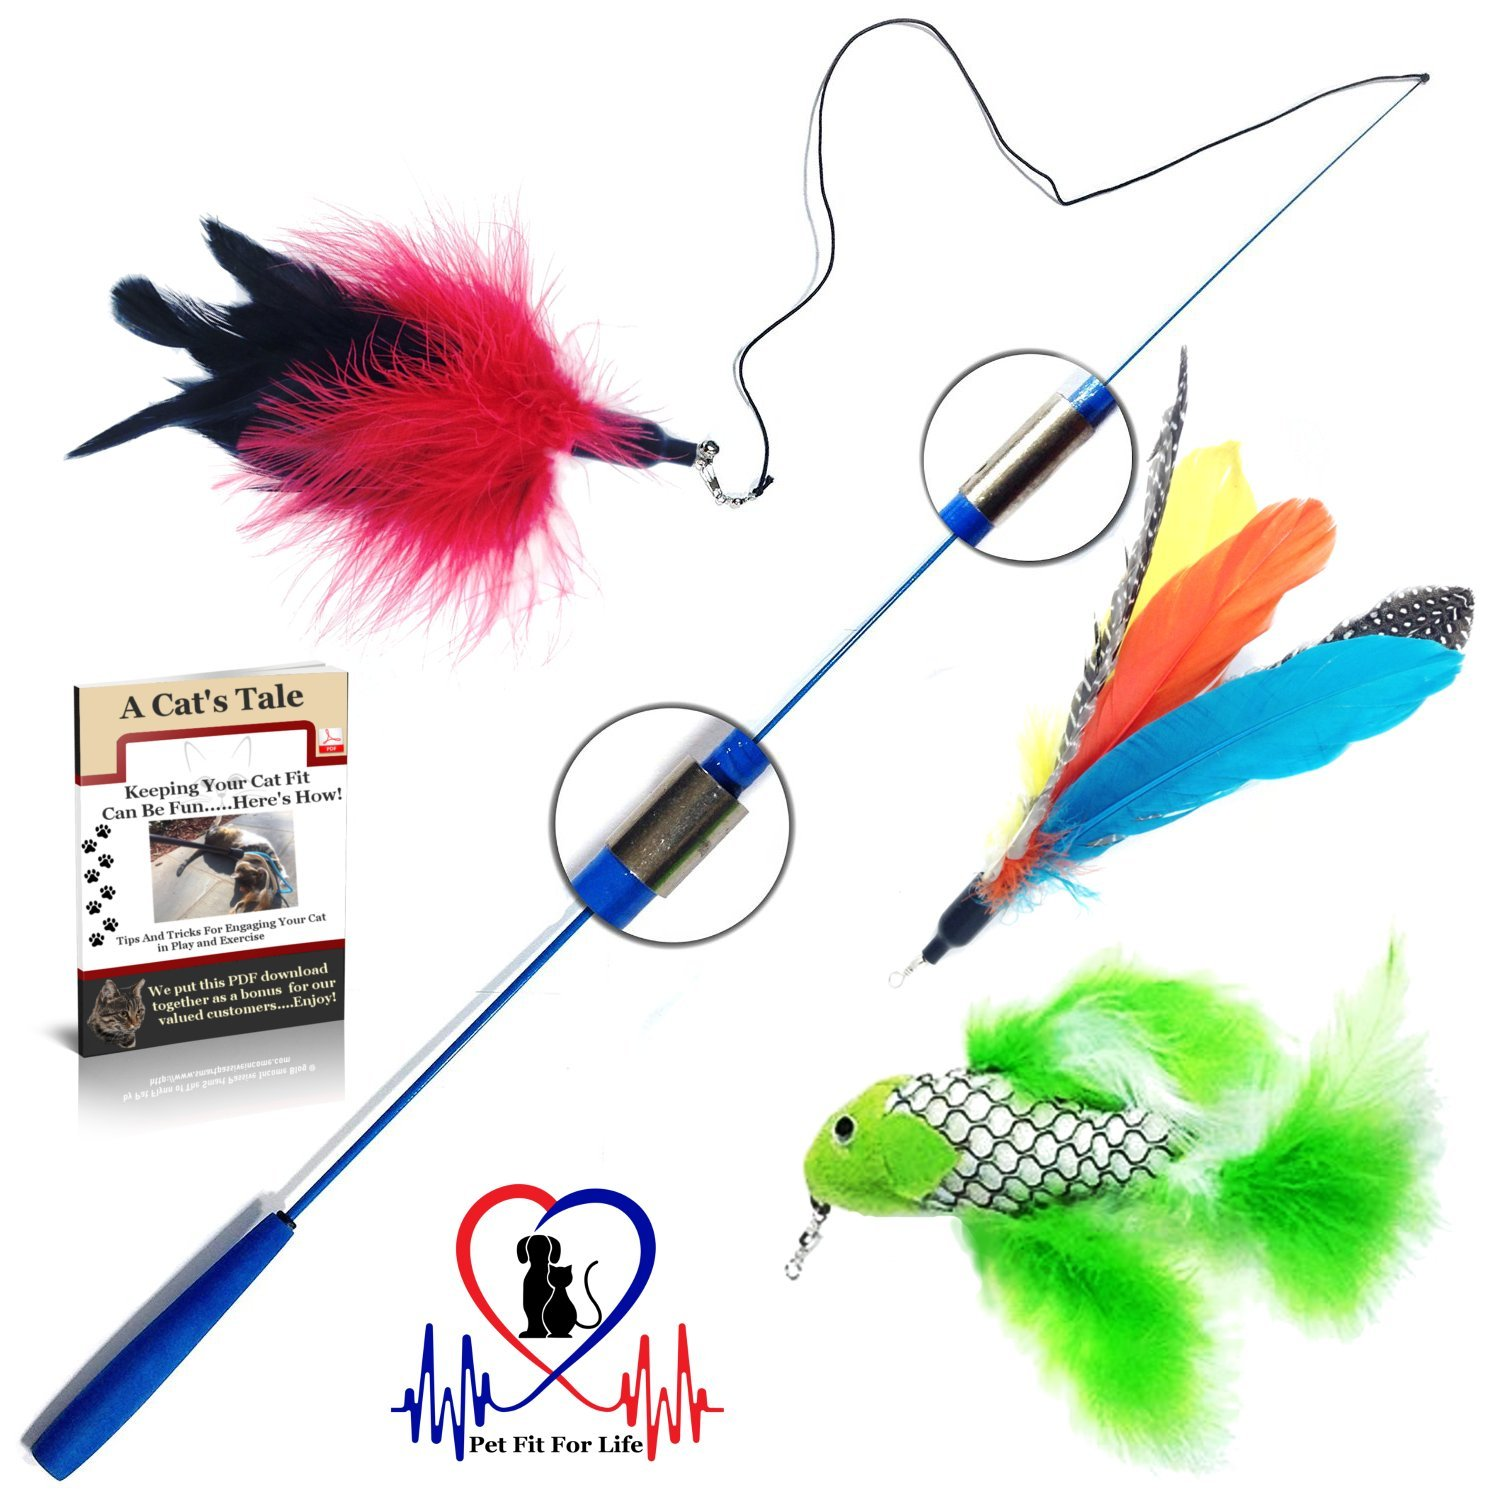 Pet Fit For Life Retractable Wand with 2 Feathers and 1 Soft Furry Combo For Your Cat and Kitten - Cat Toy Interactive Cat Wand